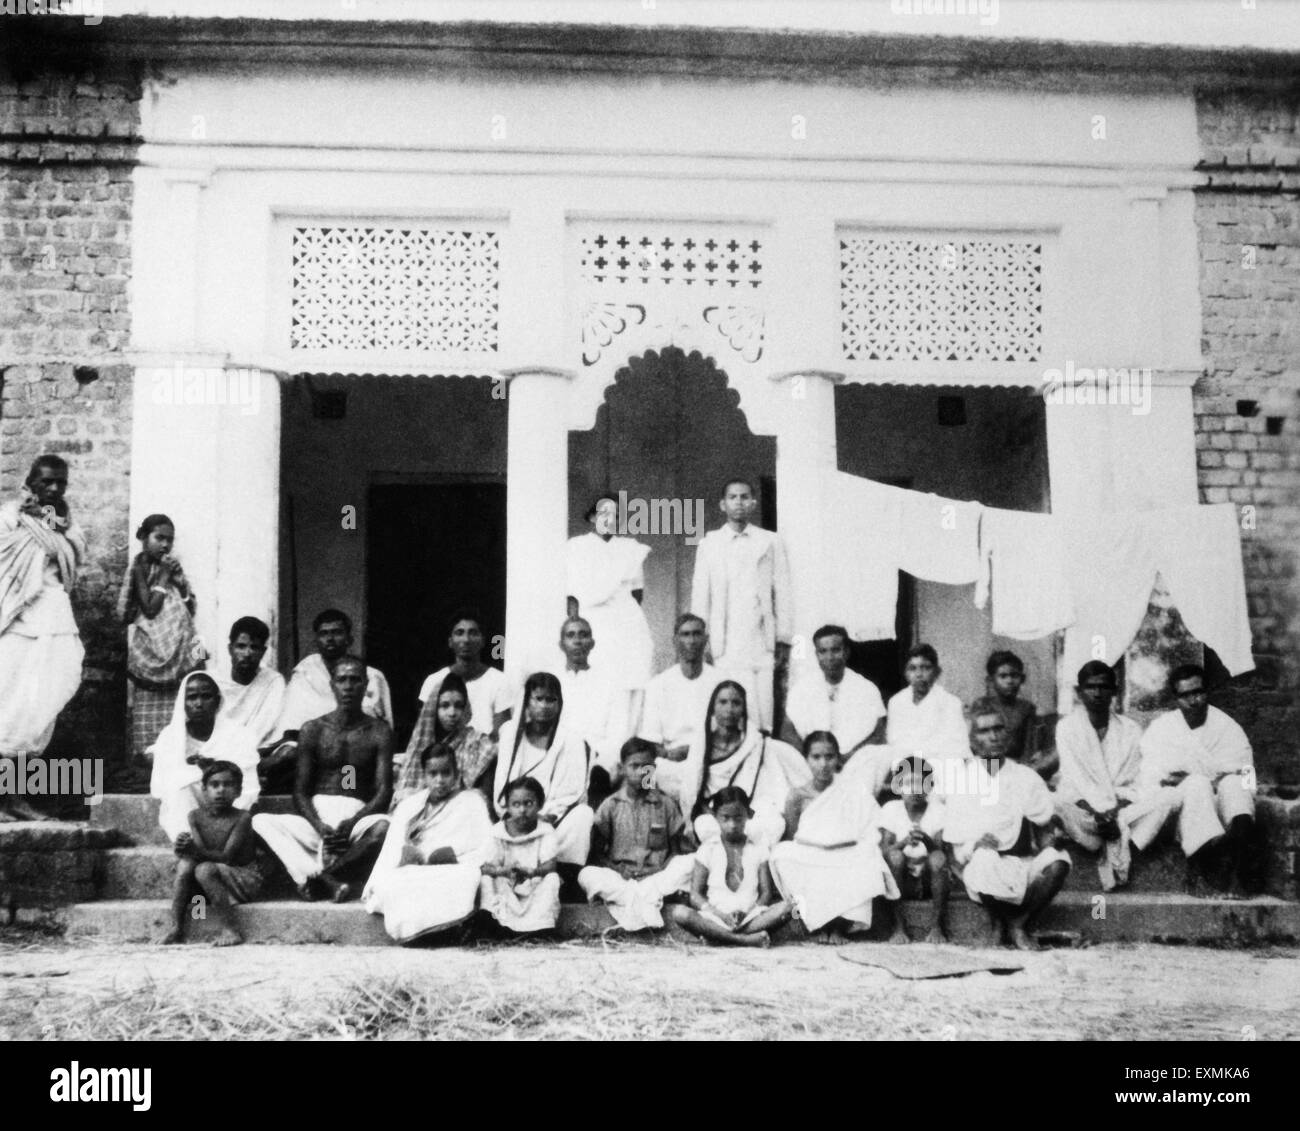 Amtus Salam and village people in the riot stricken area of Noakhali East Bengal ; November 1946 ; India NO MR - Stock Image